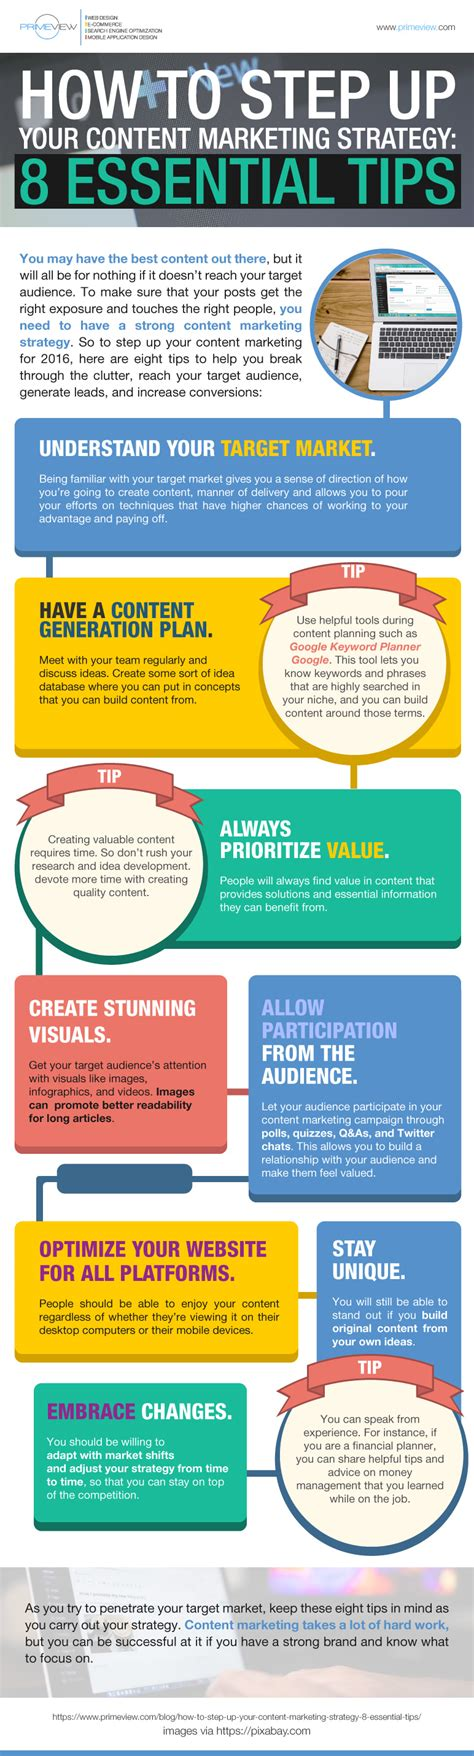 How To Step Up Your Content Marketing Strategy 8 Essential Tips [infographic]  The Local Brand®